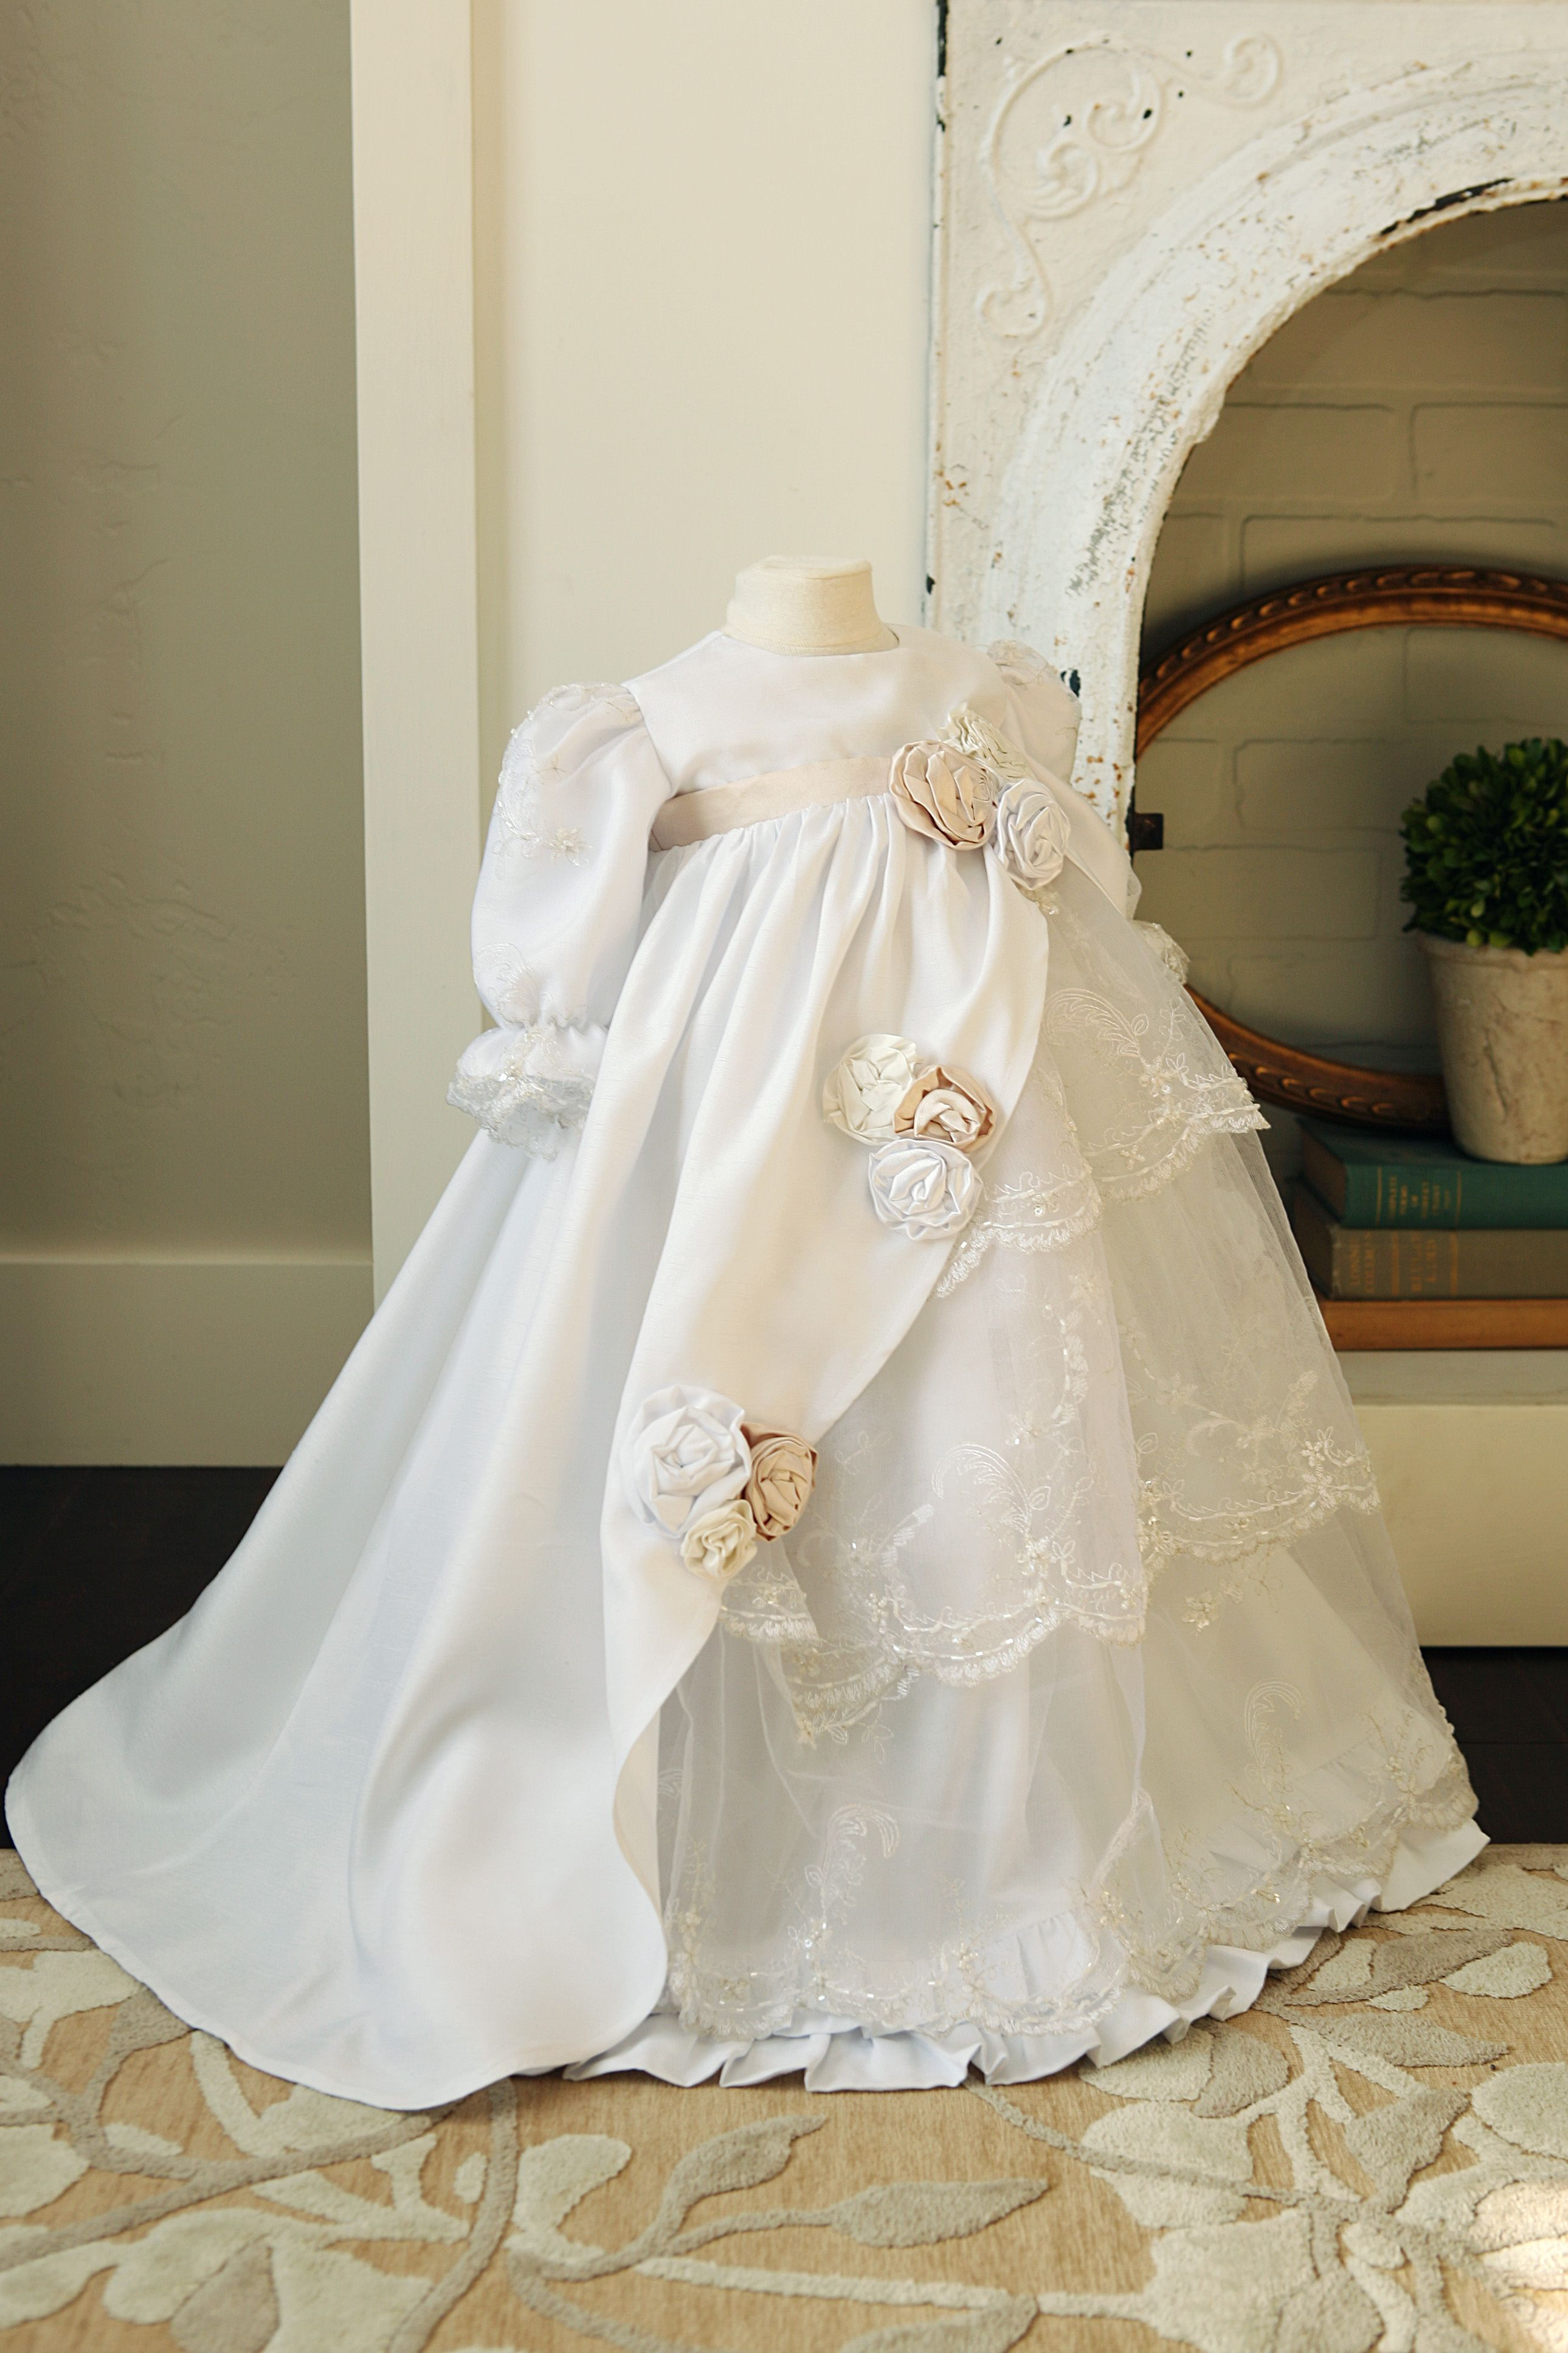 56859589e88 A New baby girl blessing or baptism dress!  ) Silk